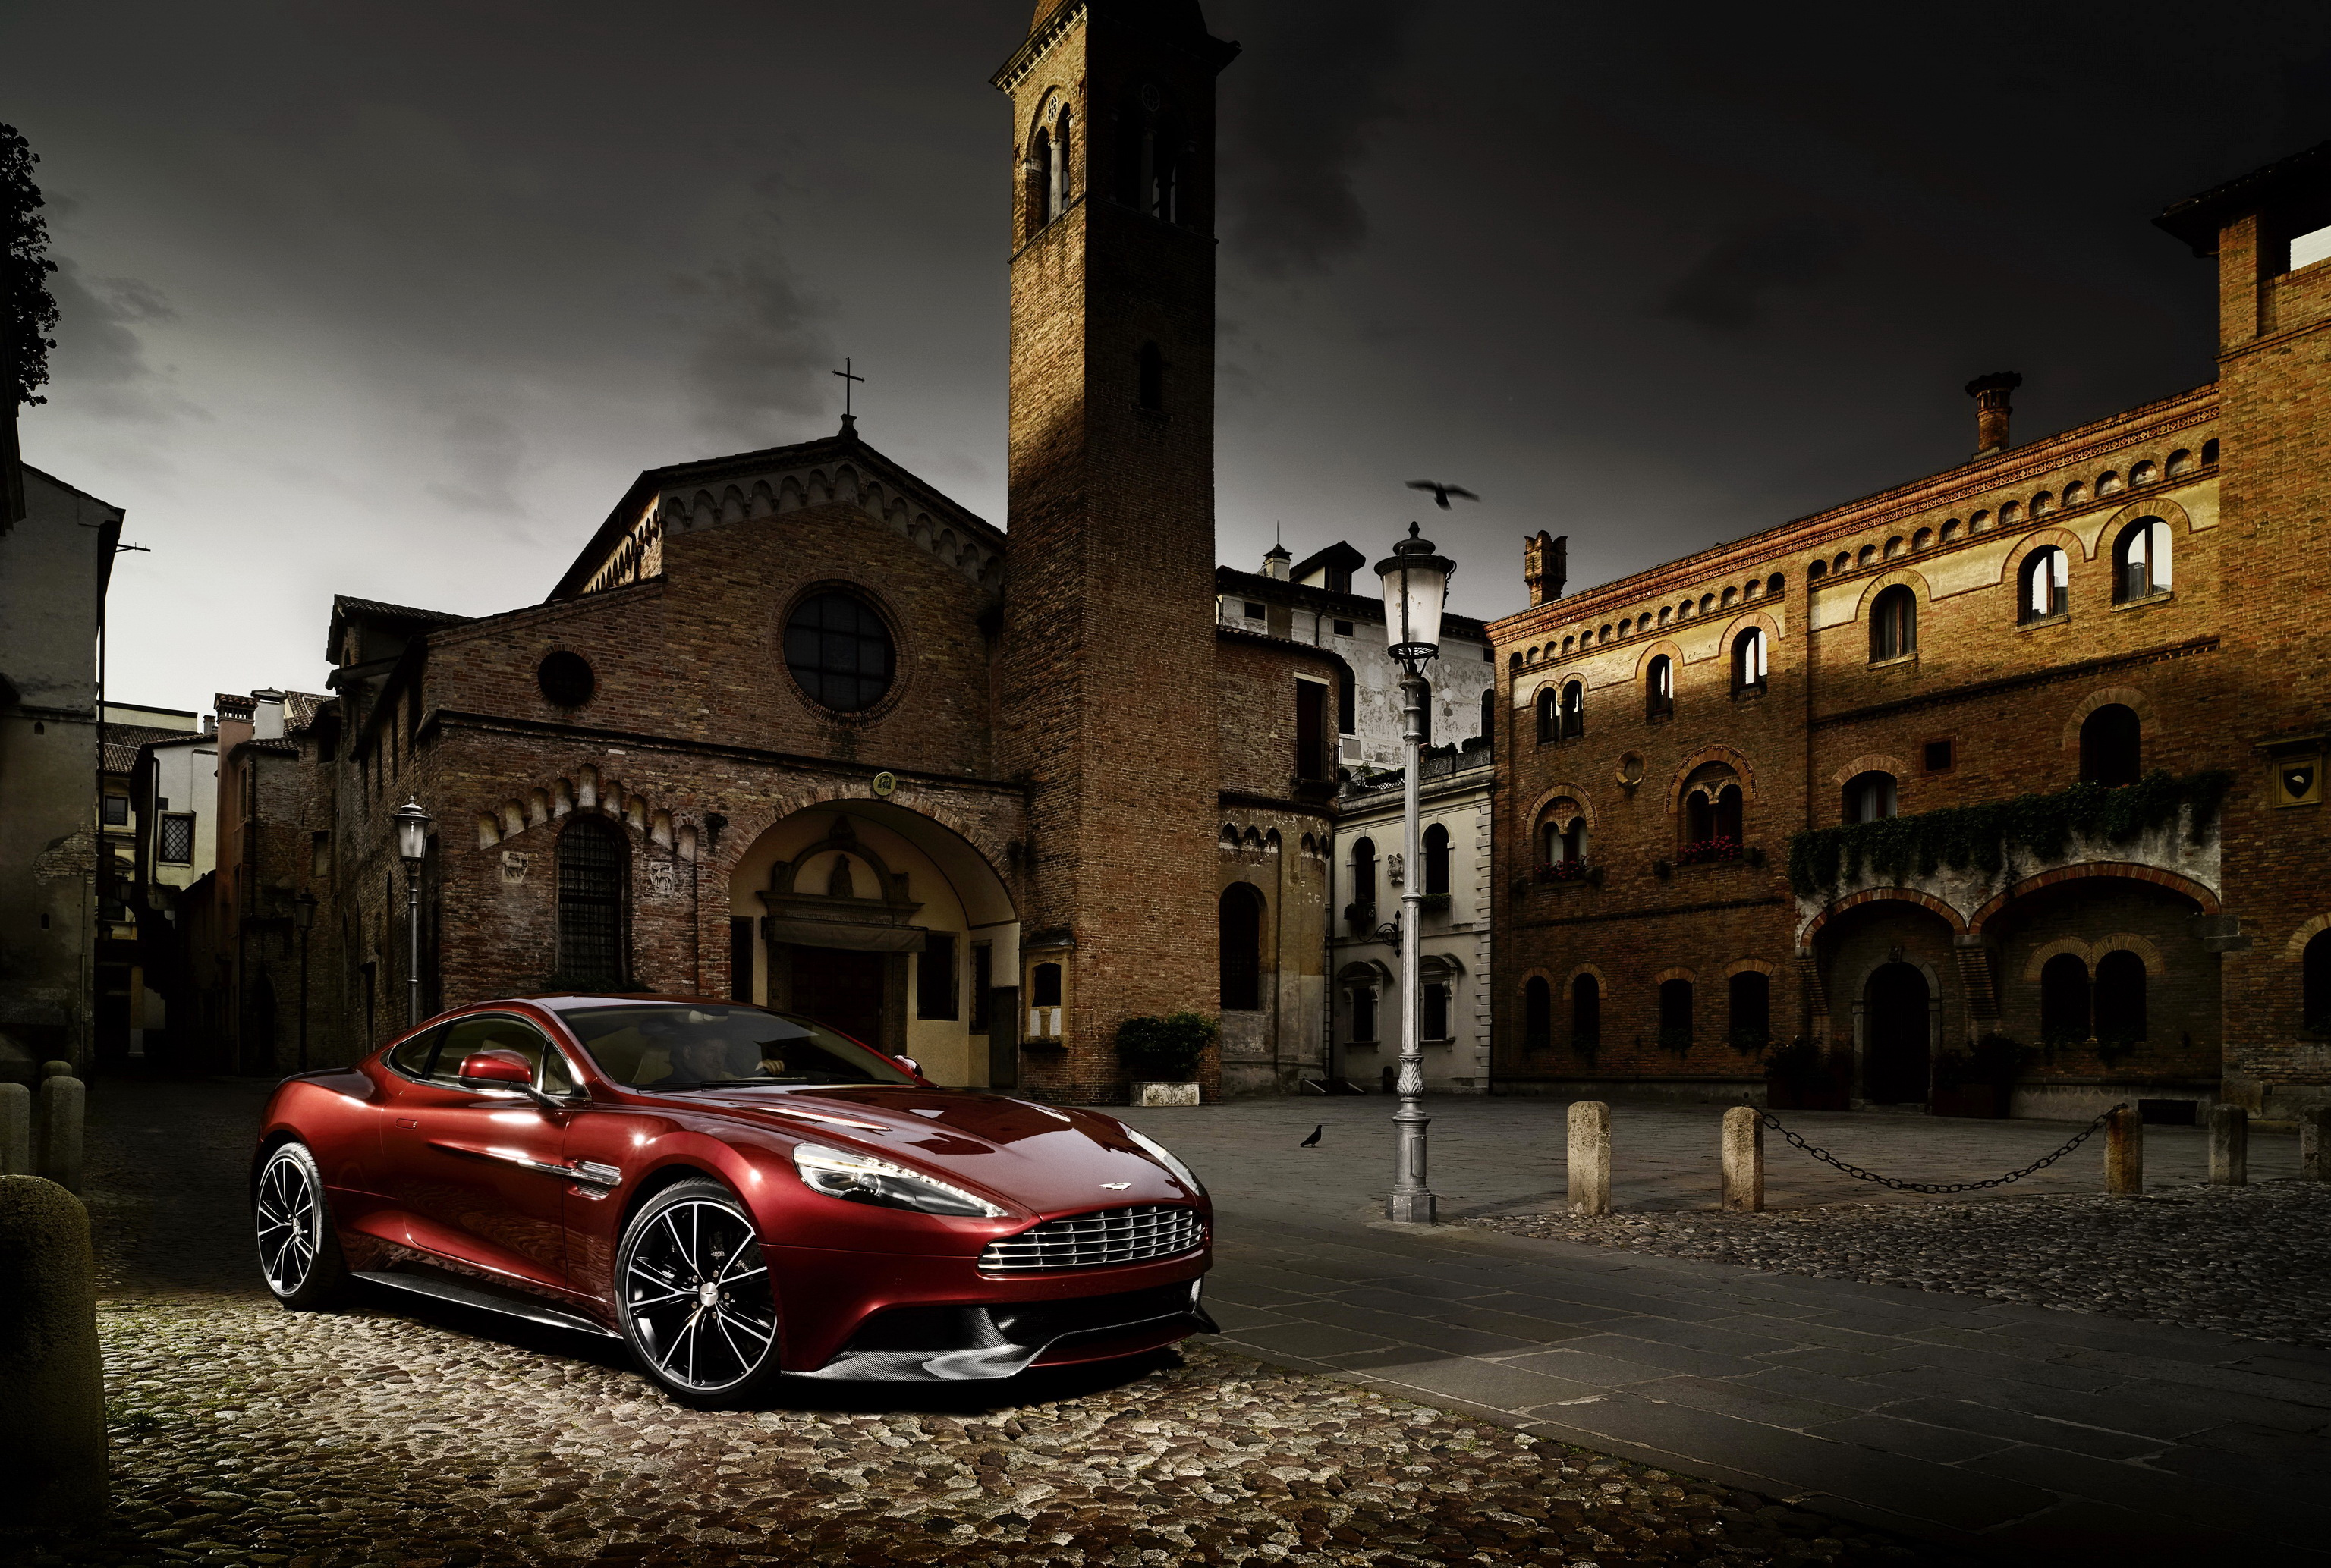 fonds d 39 ecran aston martin maison 2012 vanquish rouge phare automobile bordeaux couleur voitures. Black Bedroom Furniture Sets. Home Design Ideas